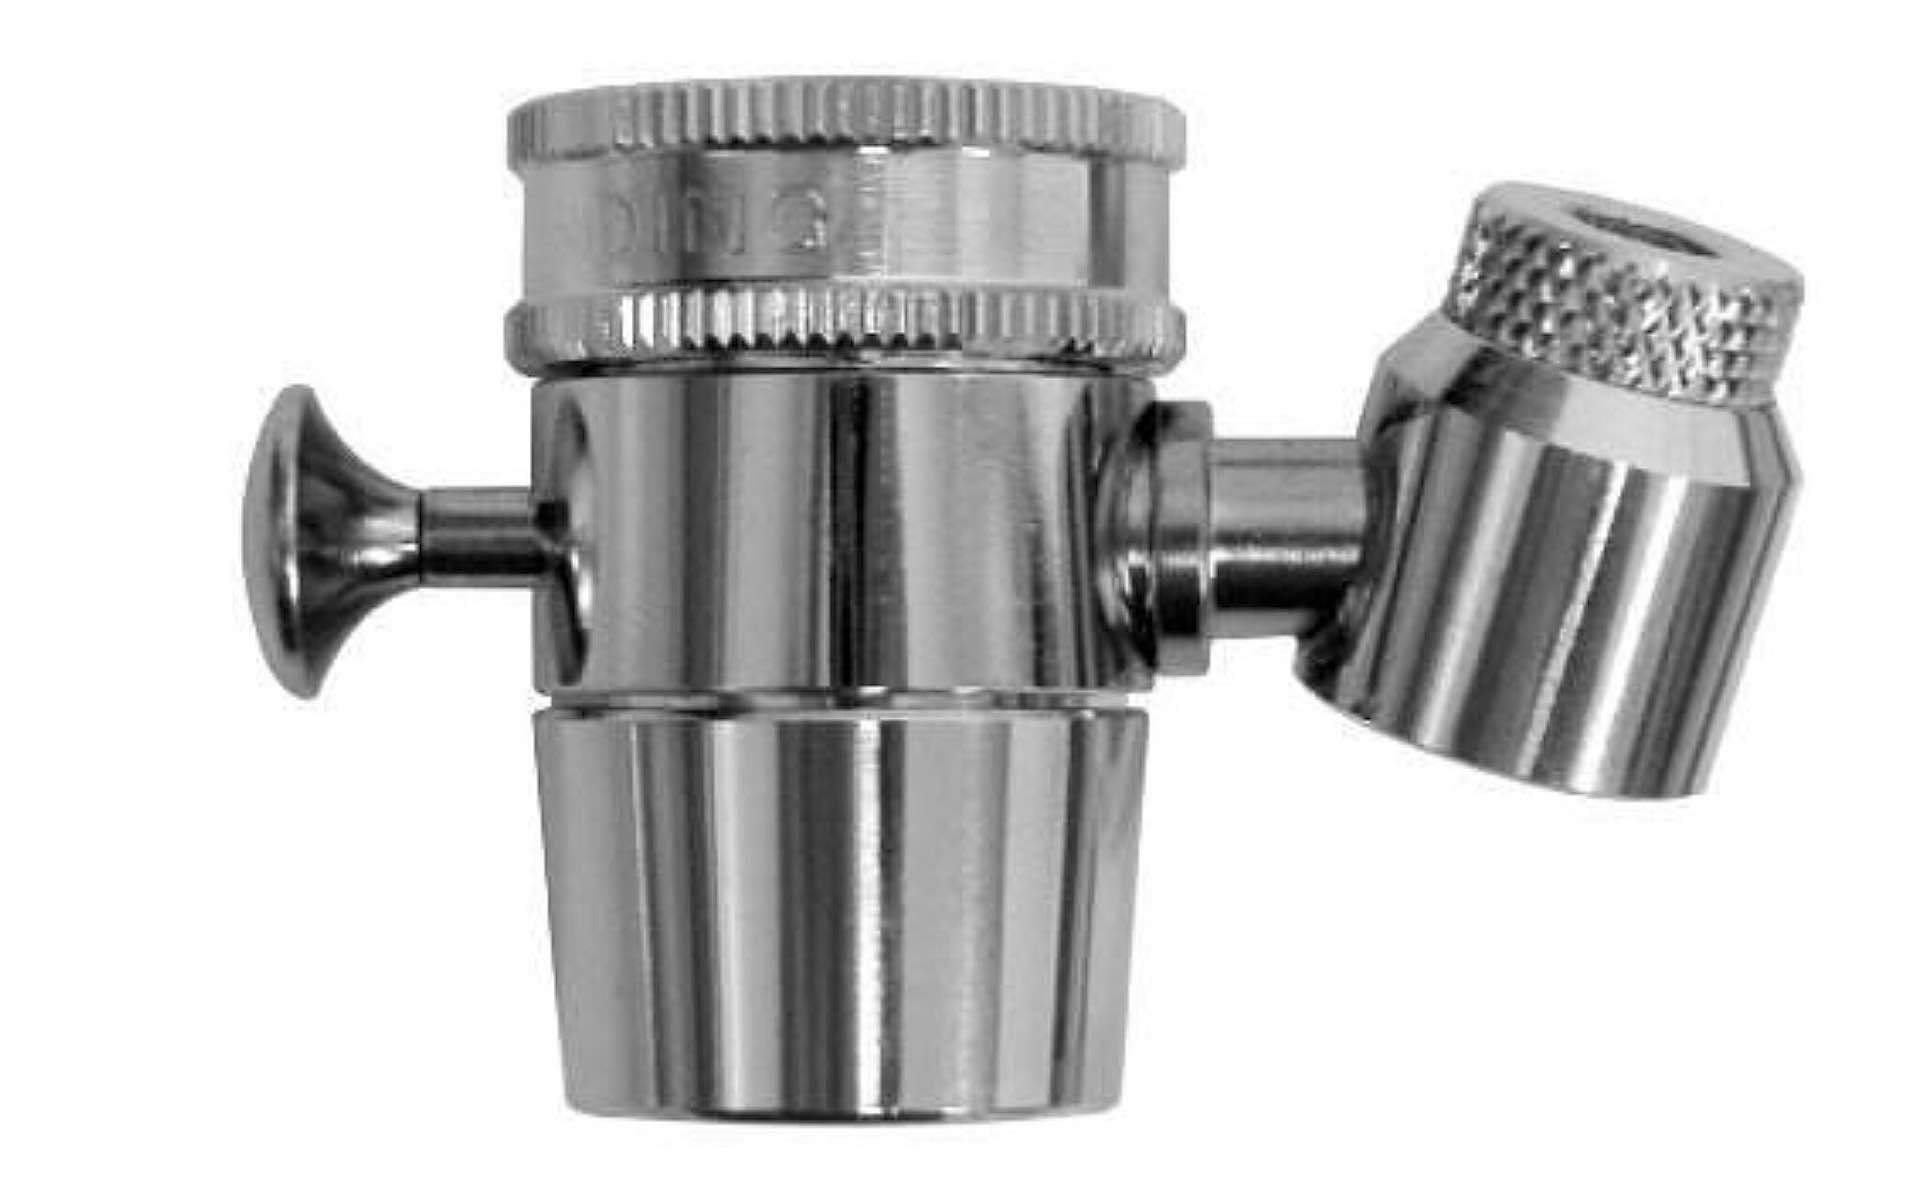 The Kwik Sip water fountain faucet attachment. ($16)